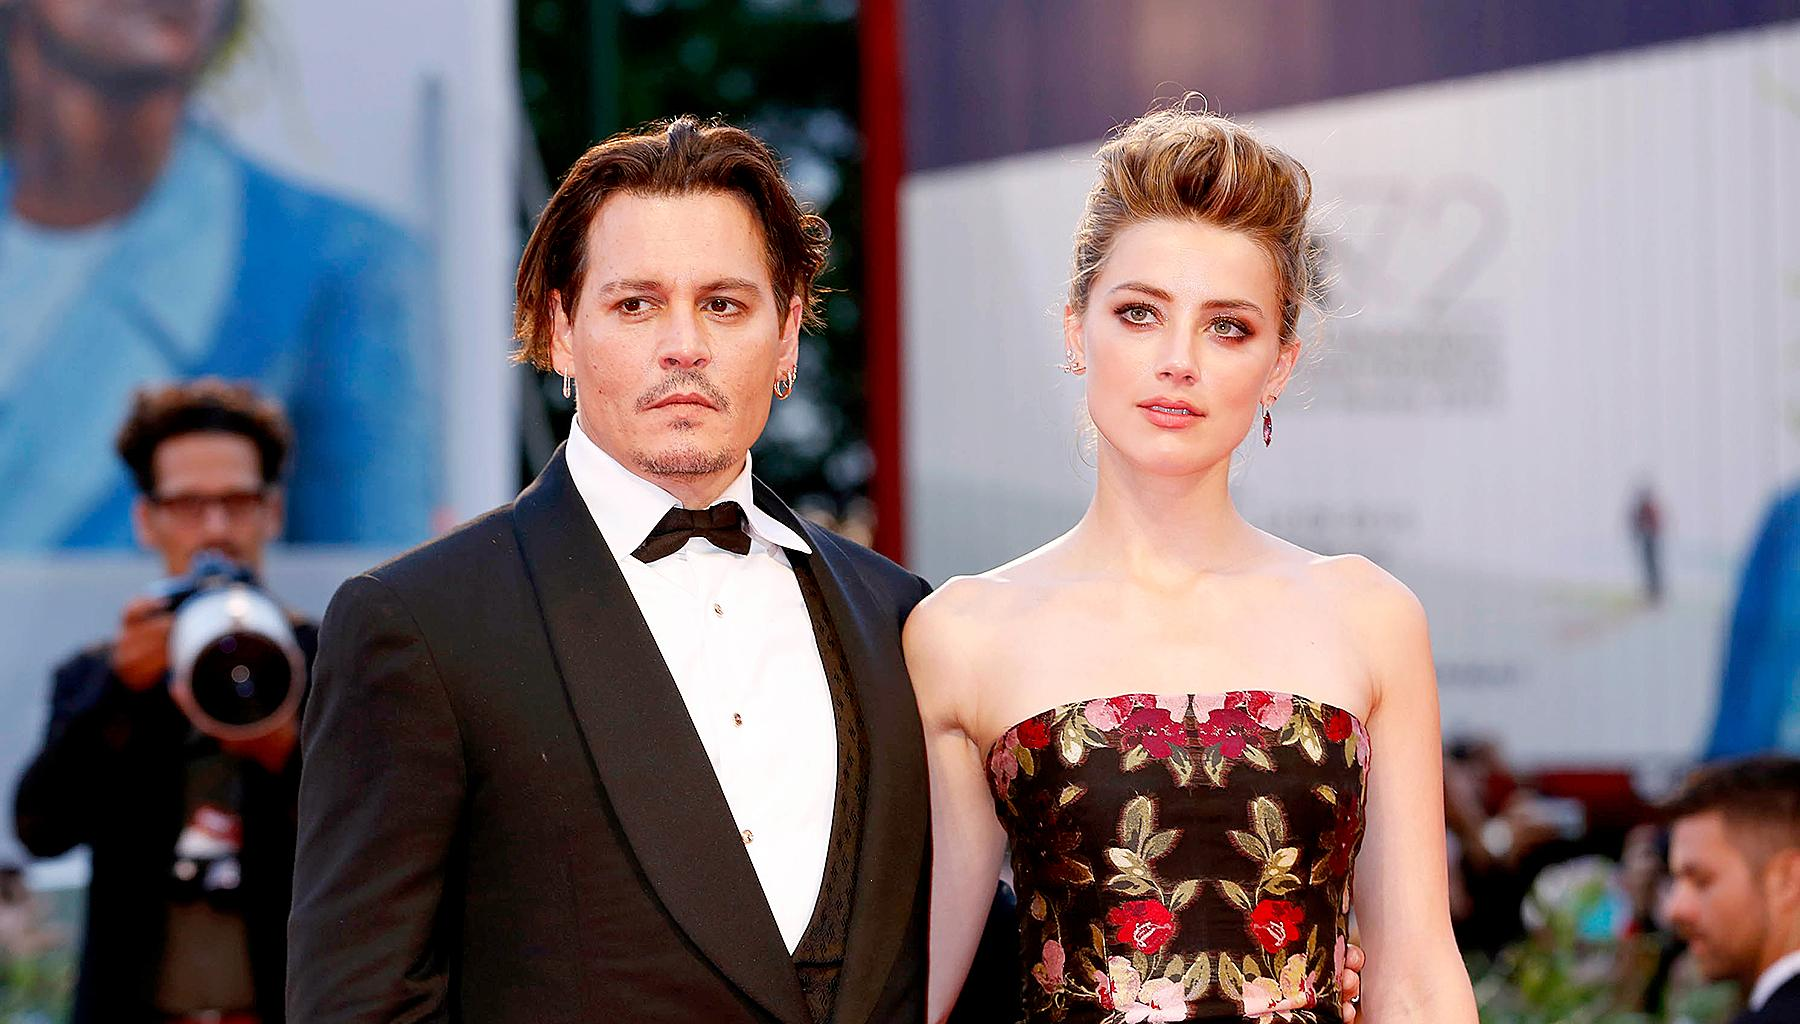 Johnny Depp Claims That His Ex-Wife Amber Heard Broke His Middle Finger's Bones - Court Documents Surface